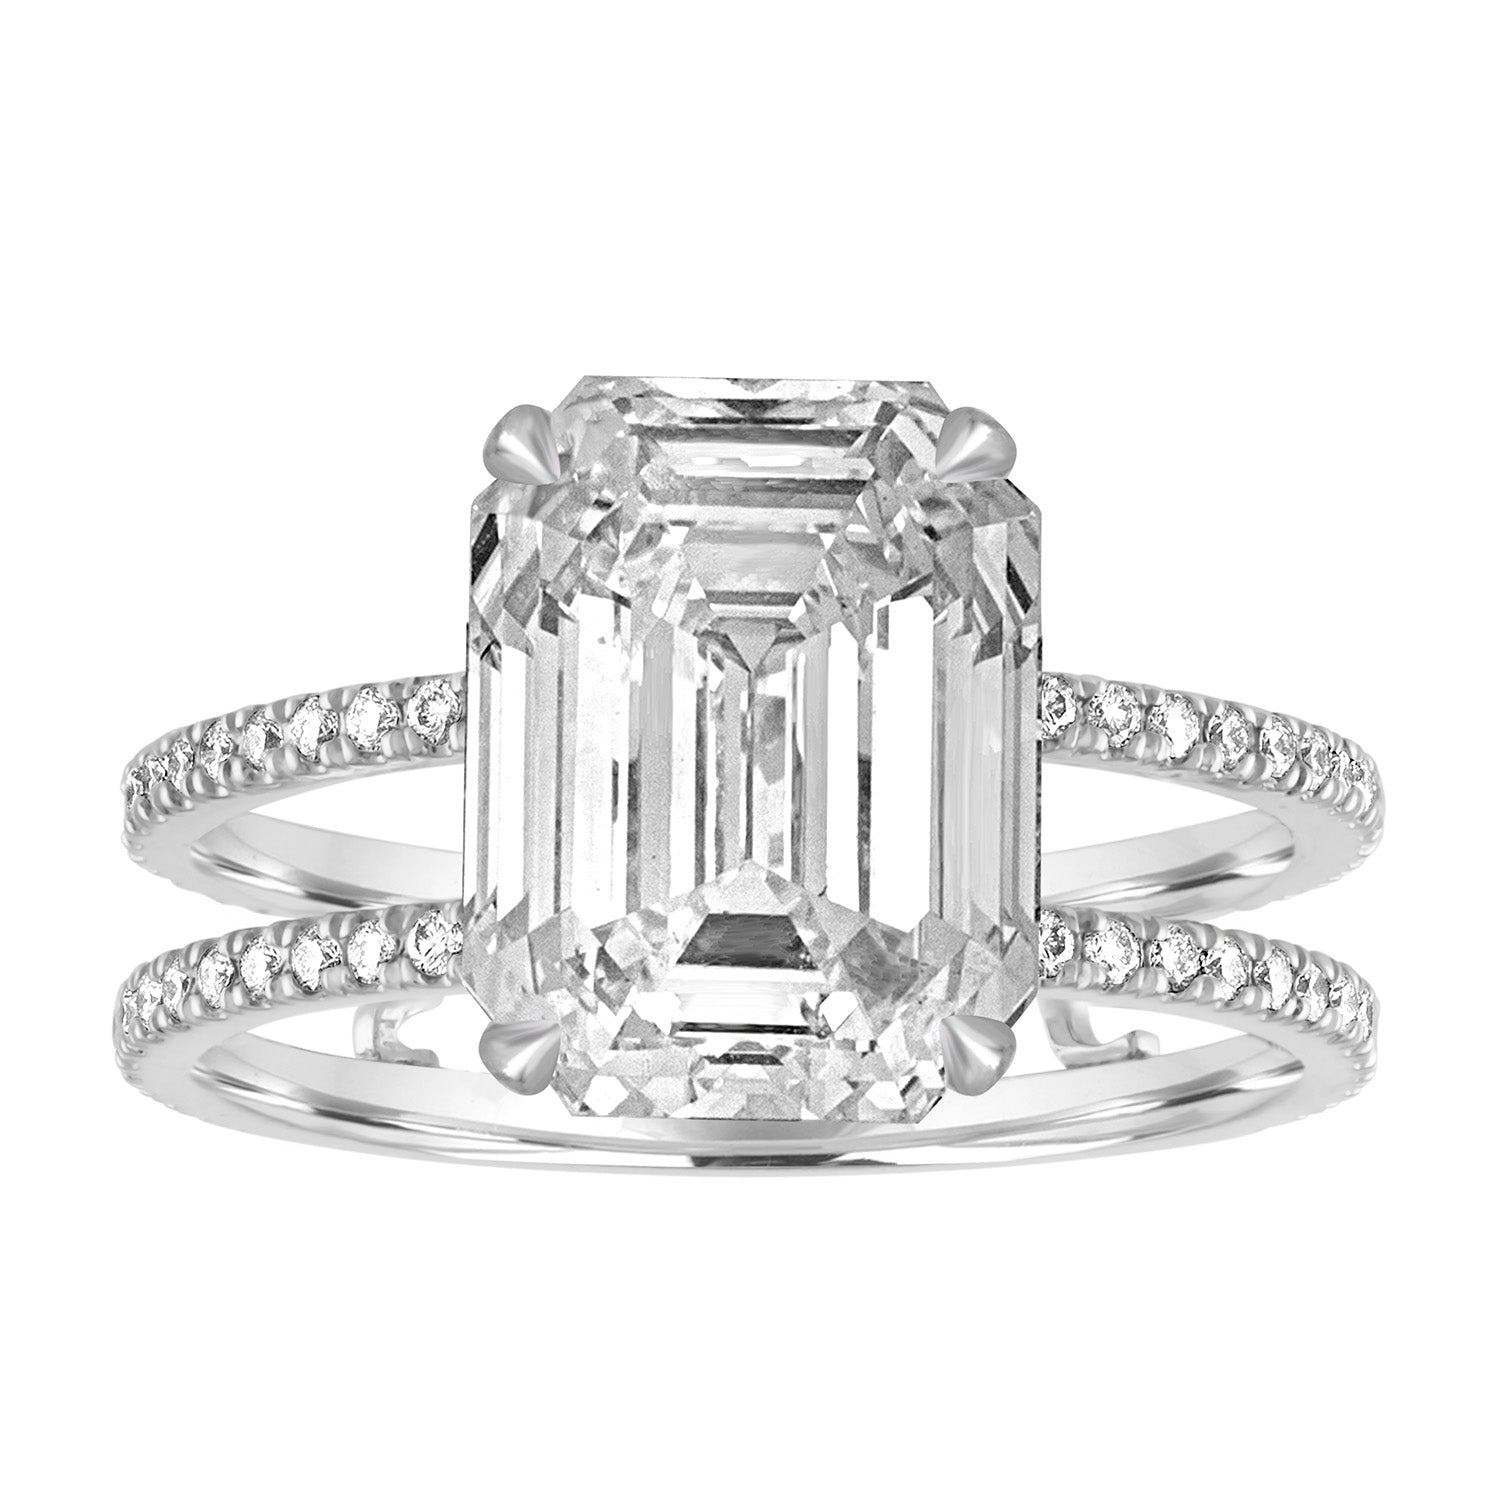 men dp ring zirconia cz to cubic engagement rings sizes with sterling row s com wedding amazon silver band